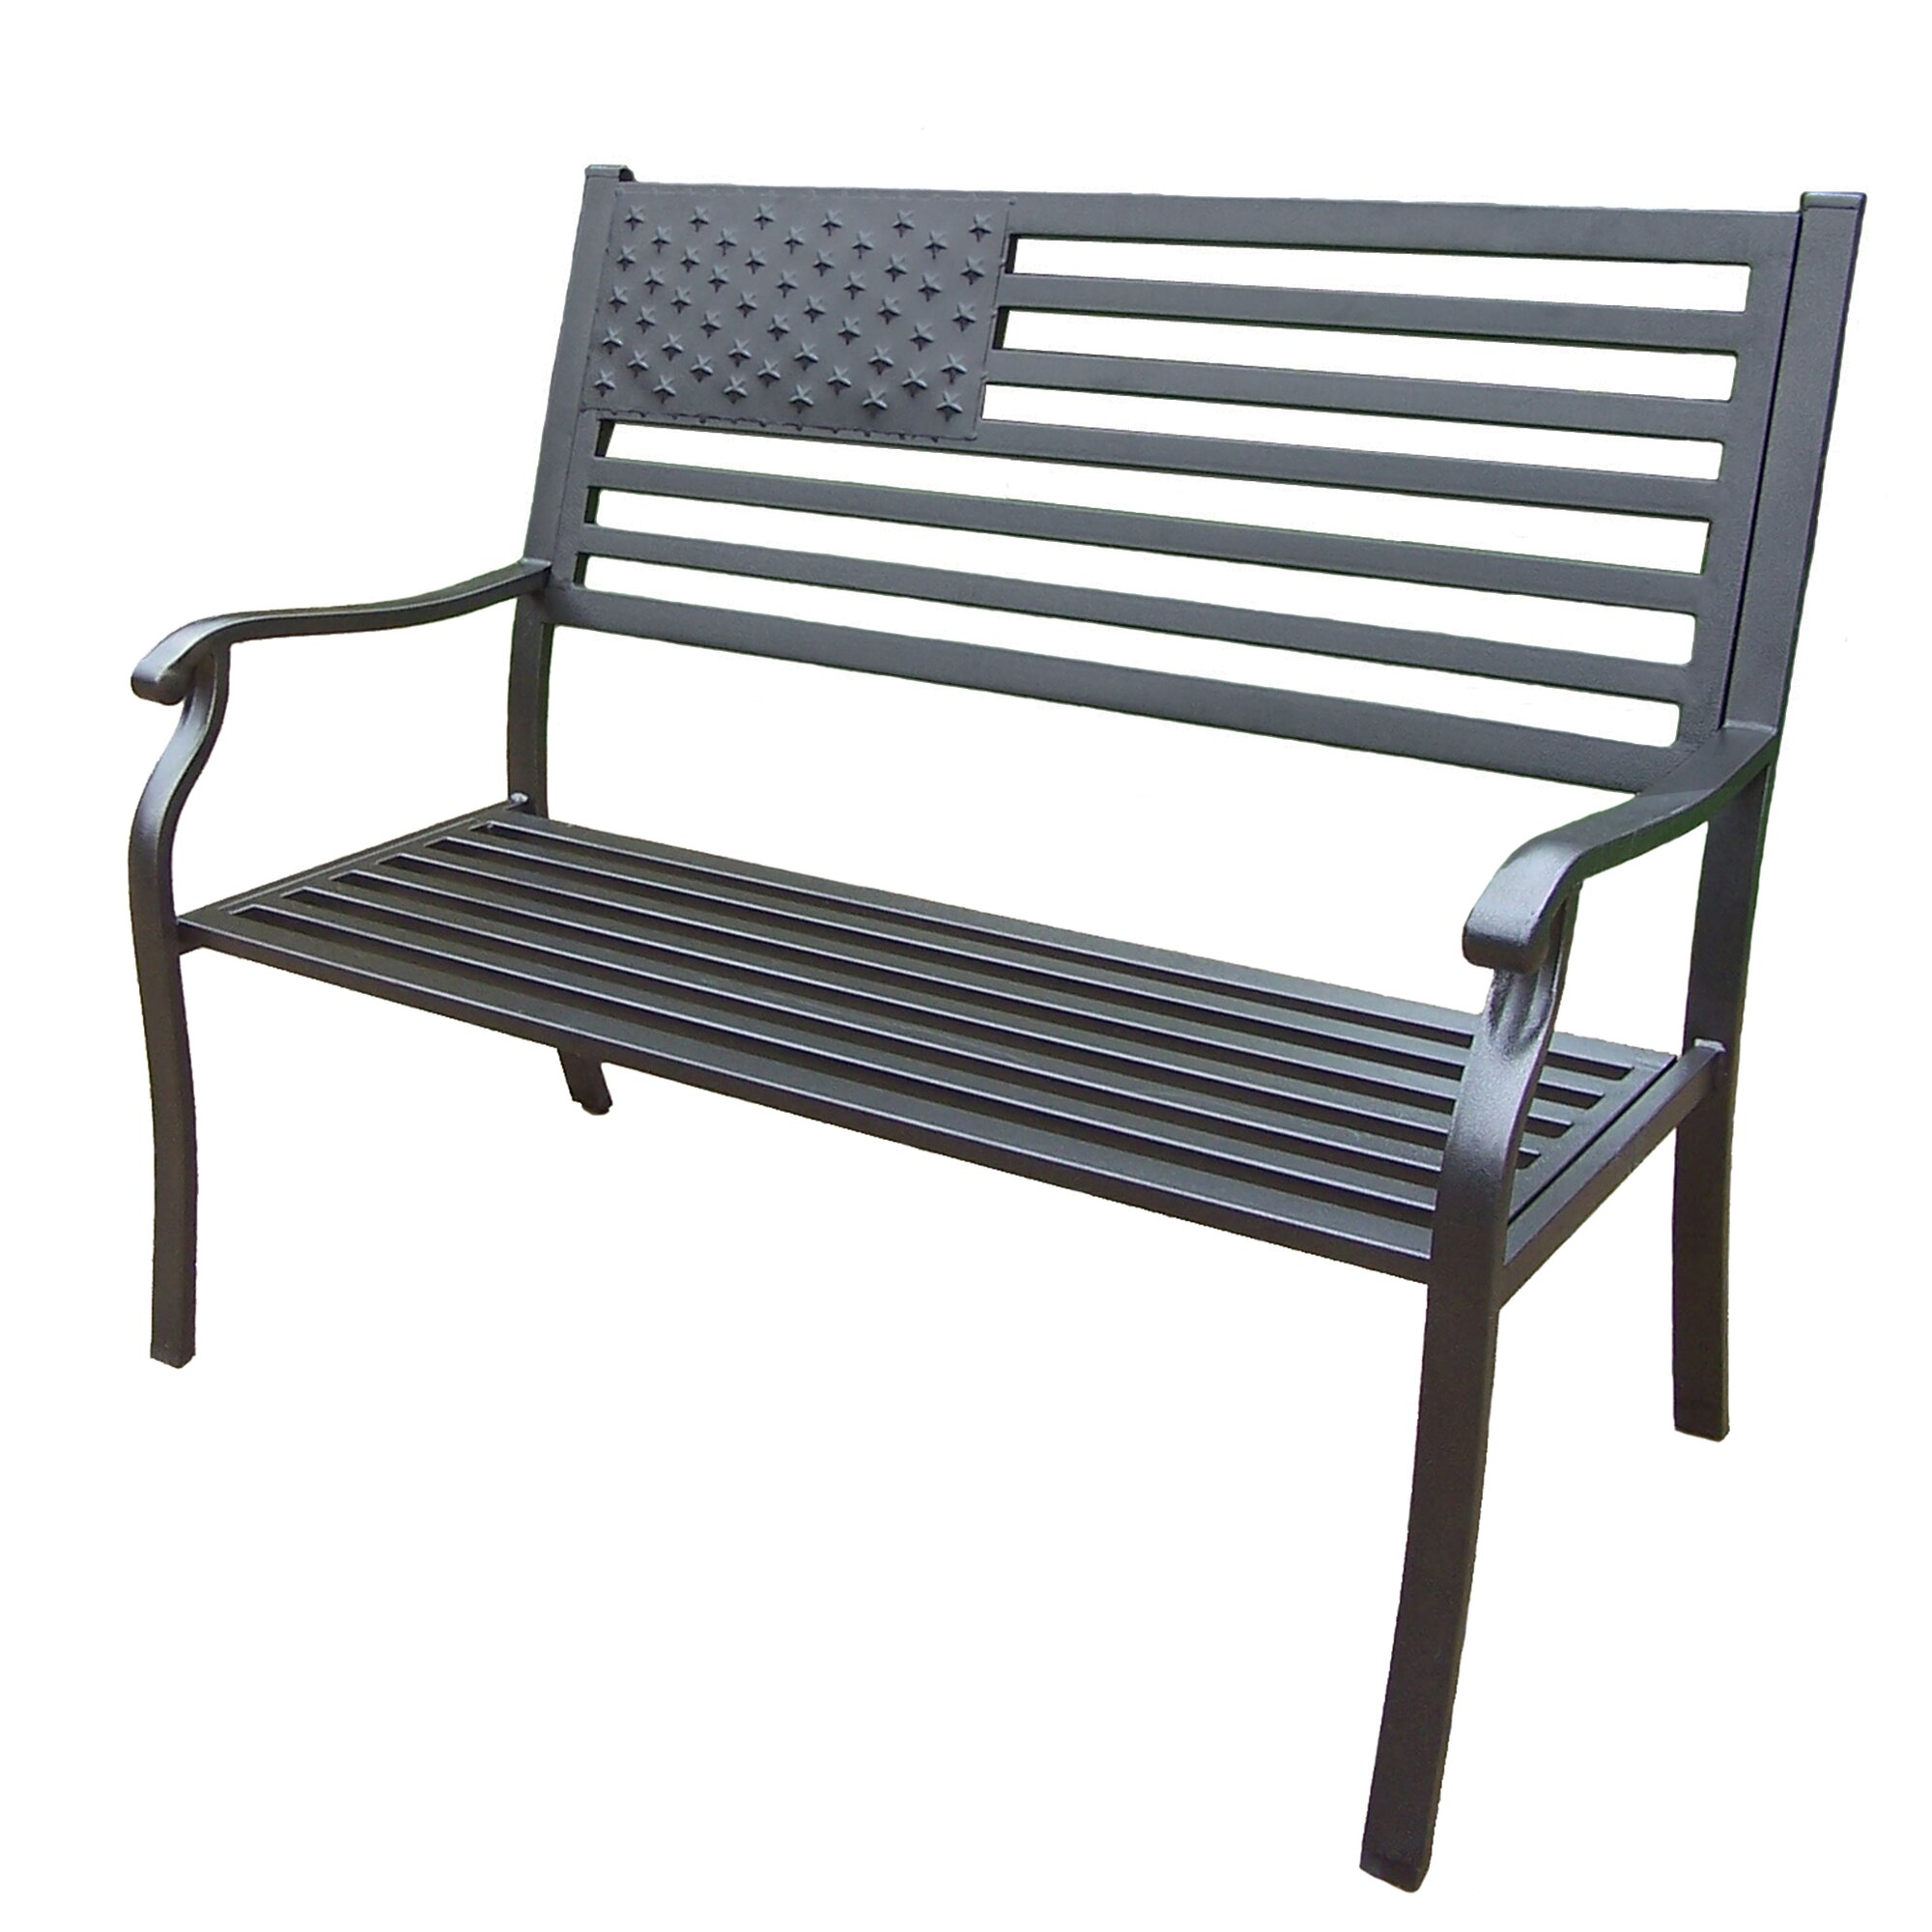 oakland living patio furniture reviews oakland living wayfair black wicker outdoor furniture wayfair wicker furniture cushions